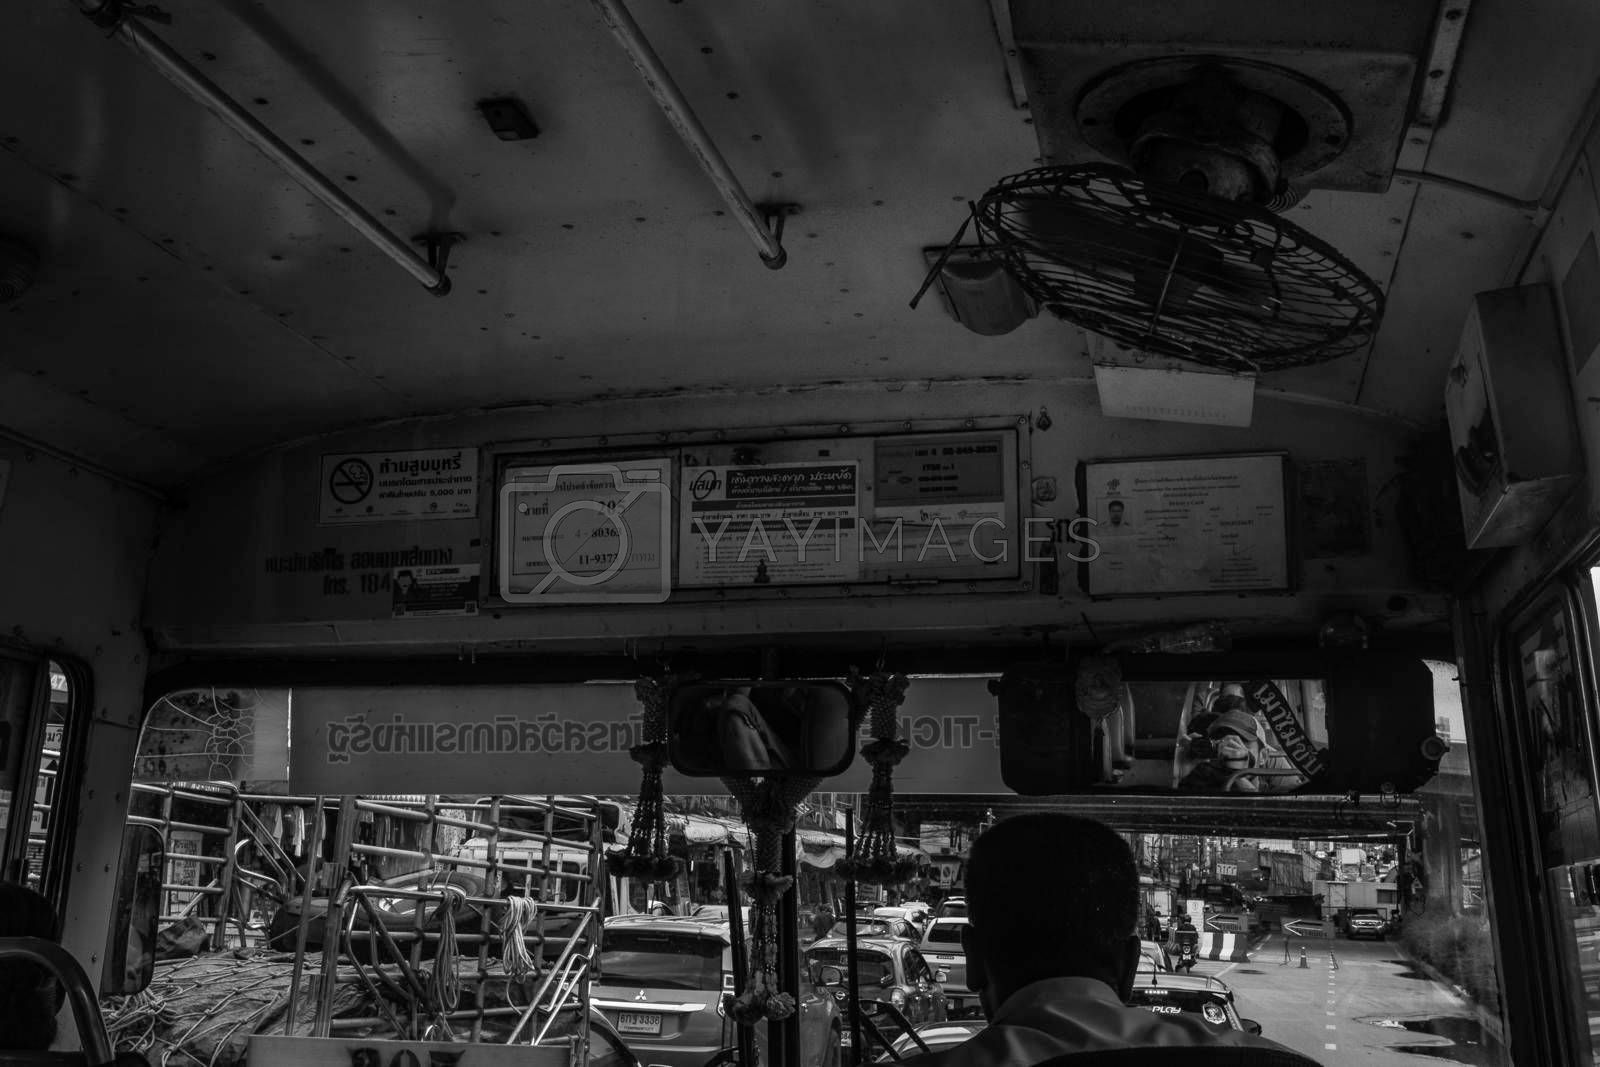 bangkok,Thailand - jun 29, 2019 : The bus driver in a old bus on the roads of bangkok, Black and white.